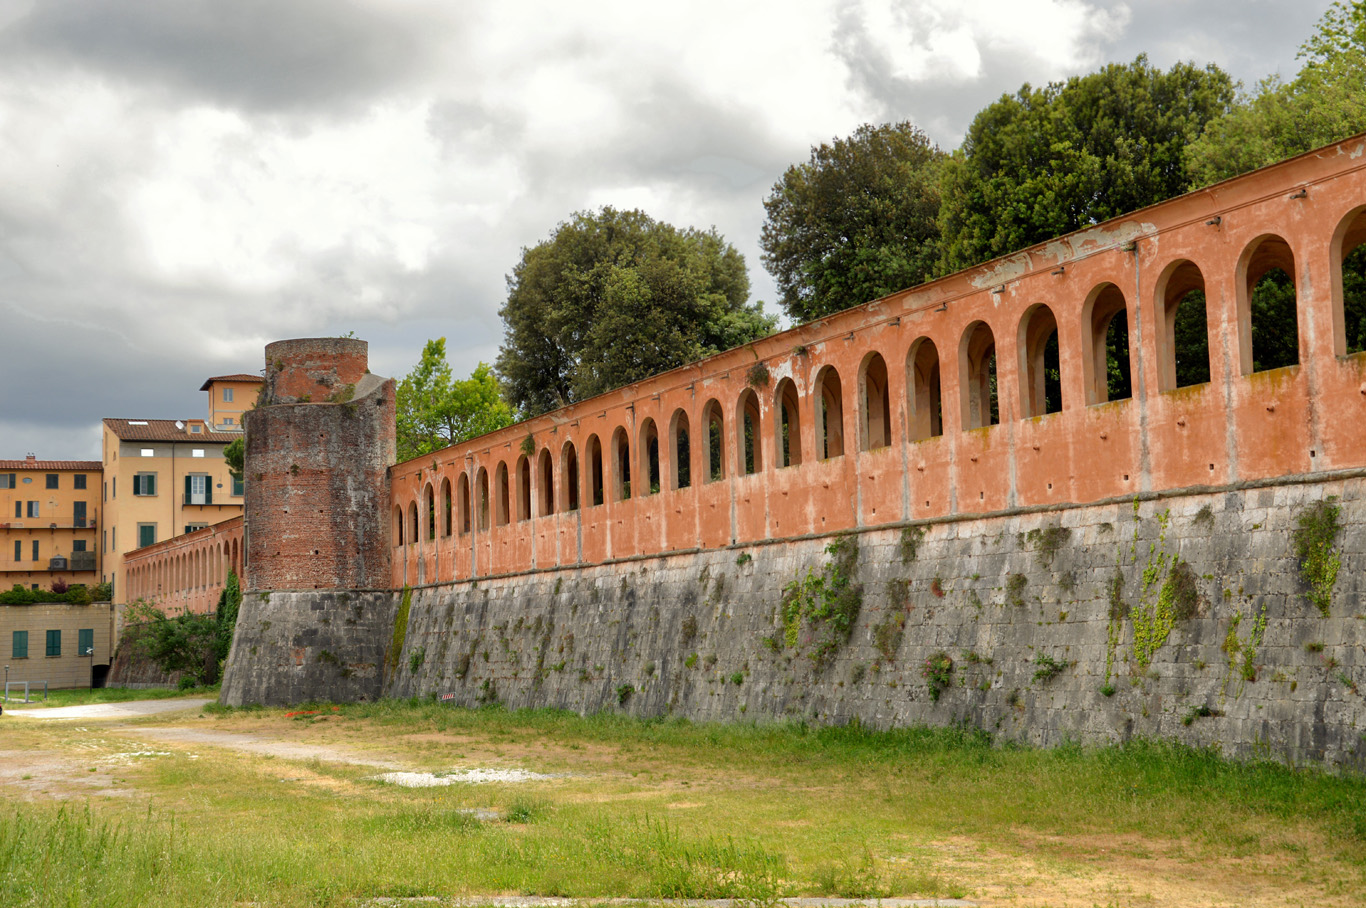 Fortification Walls